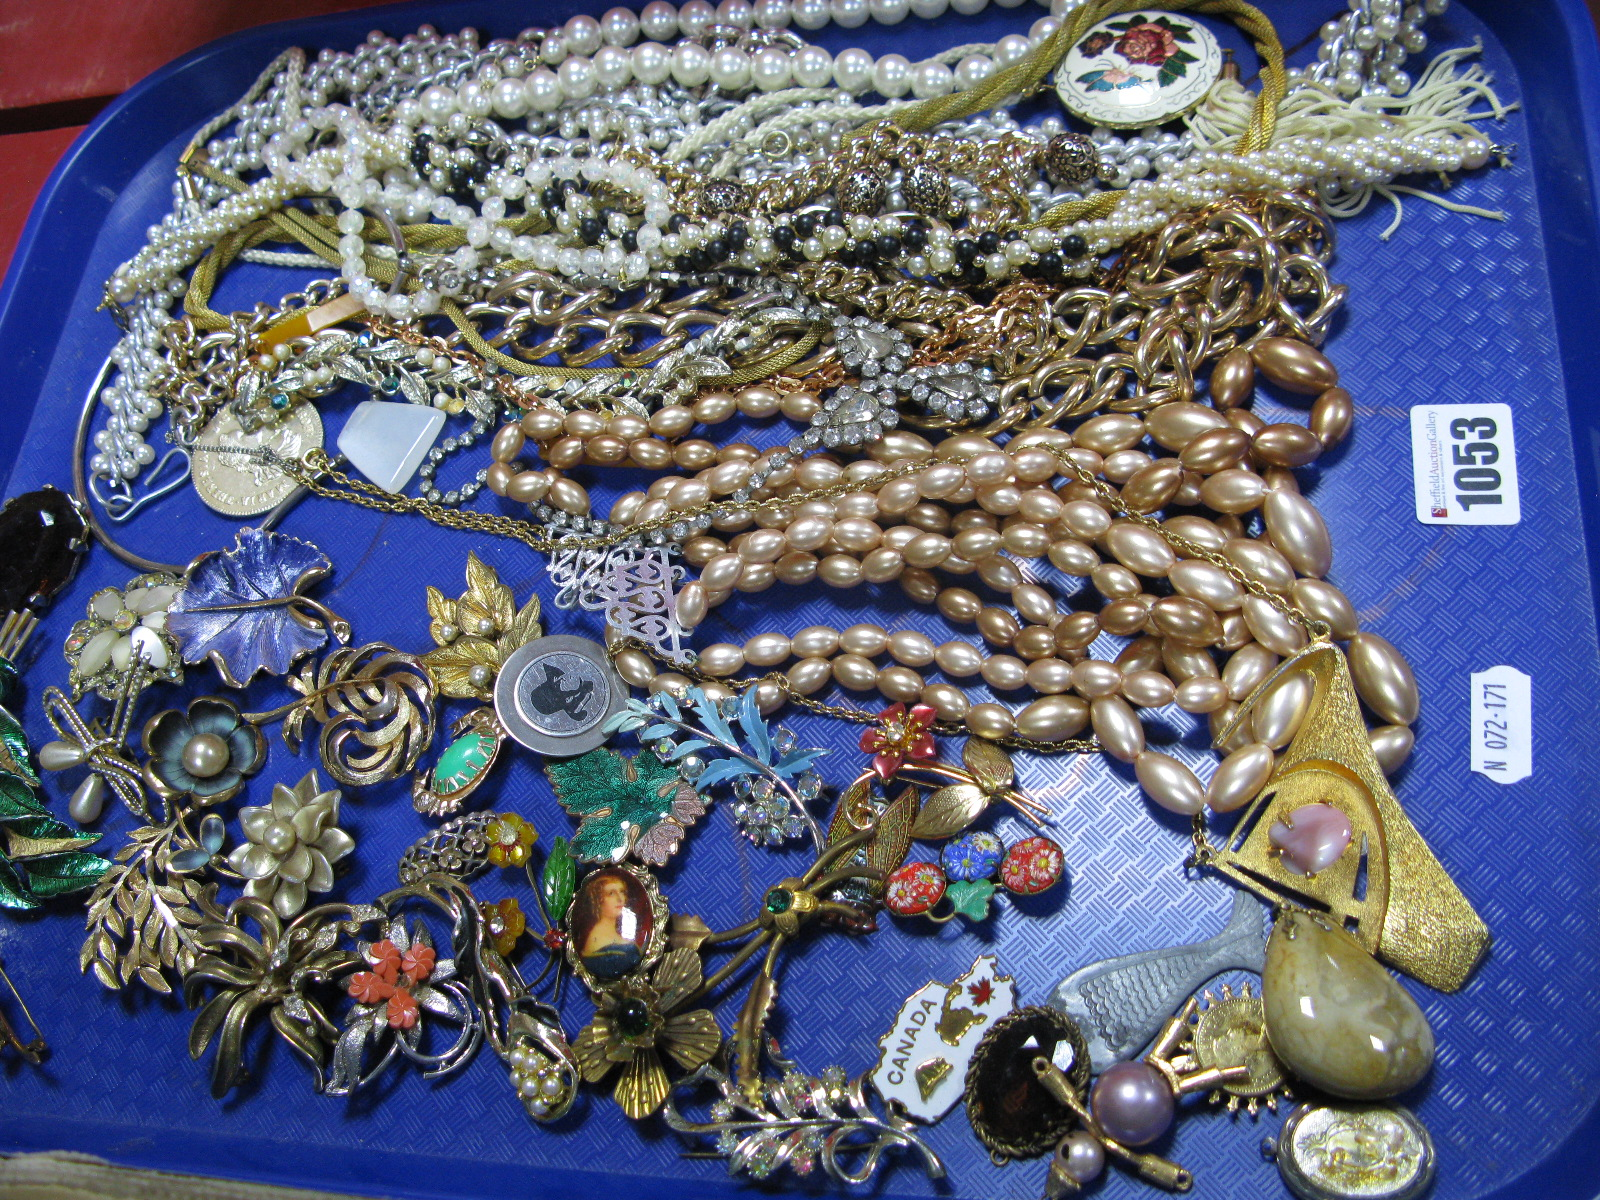 Lot 1053 - A Mixed Lot of Assorted Costume Jewellery, including imitation pearl necklace, beads, etc;